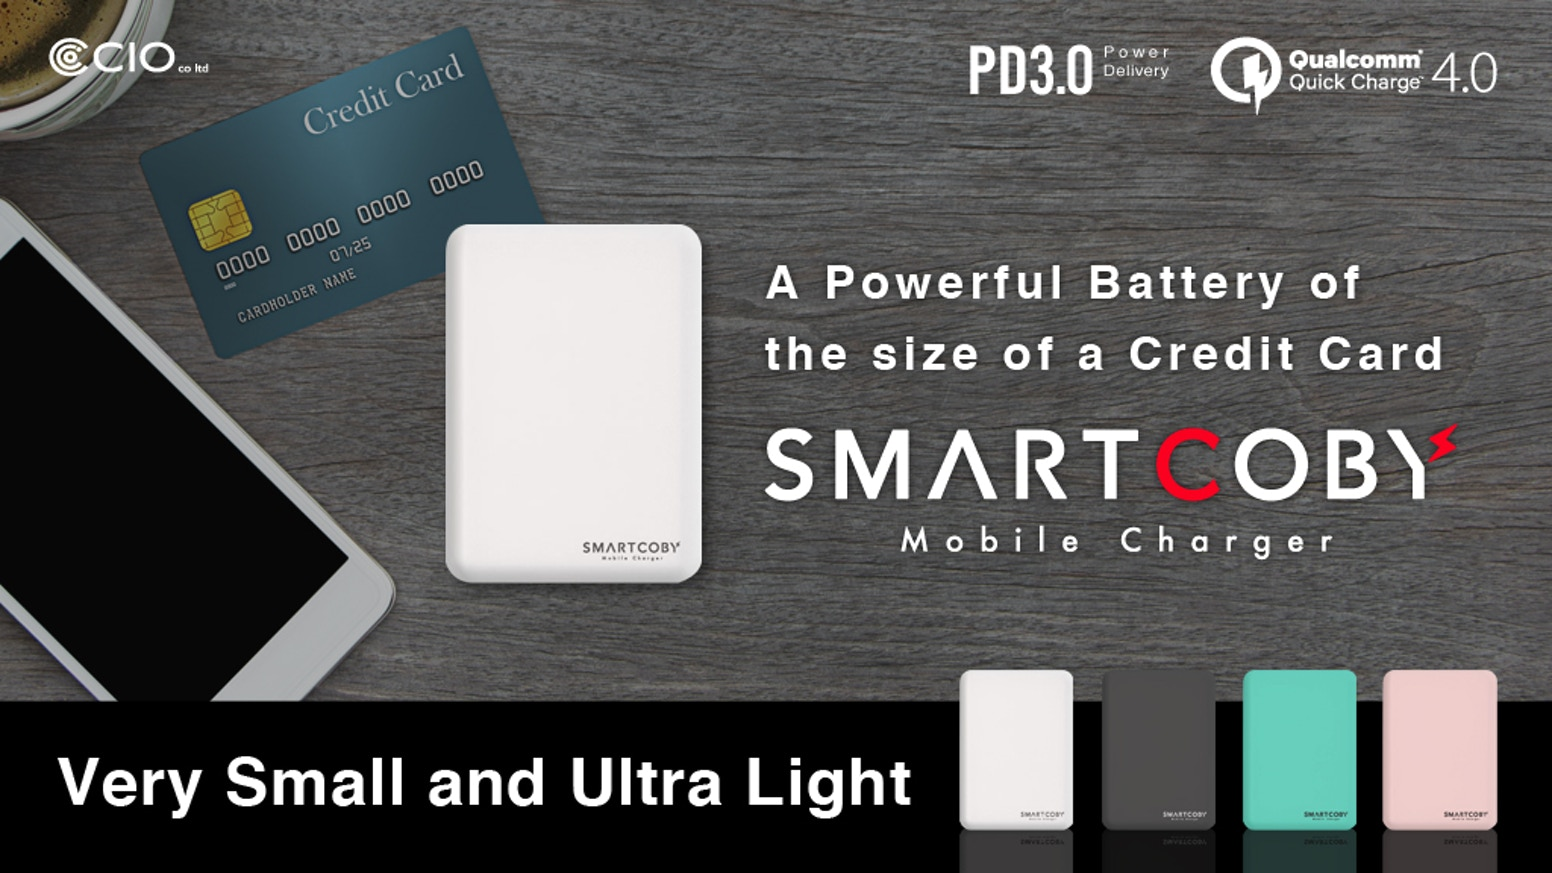 Conquering the challenge of creating the world's smallest and lightest power bank, we've designed a business card-sized battery.